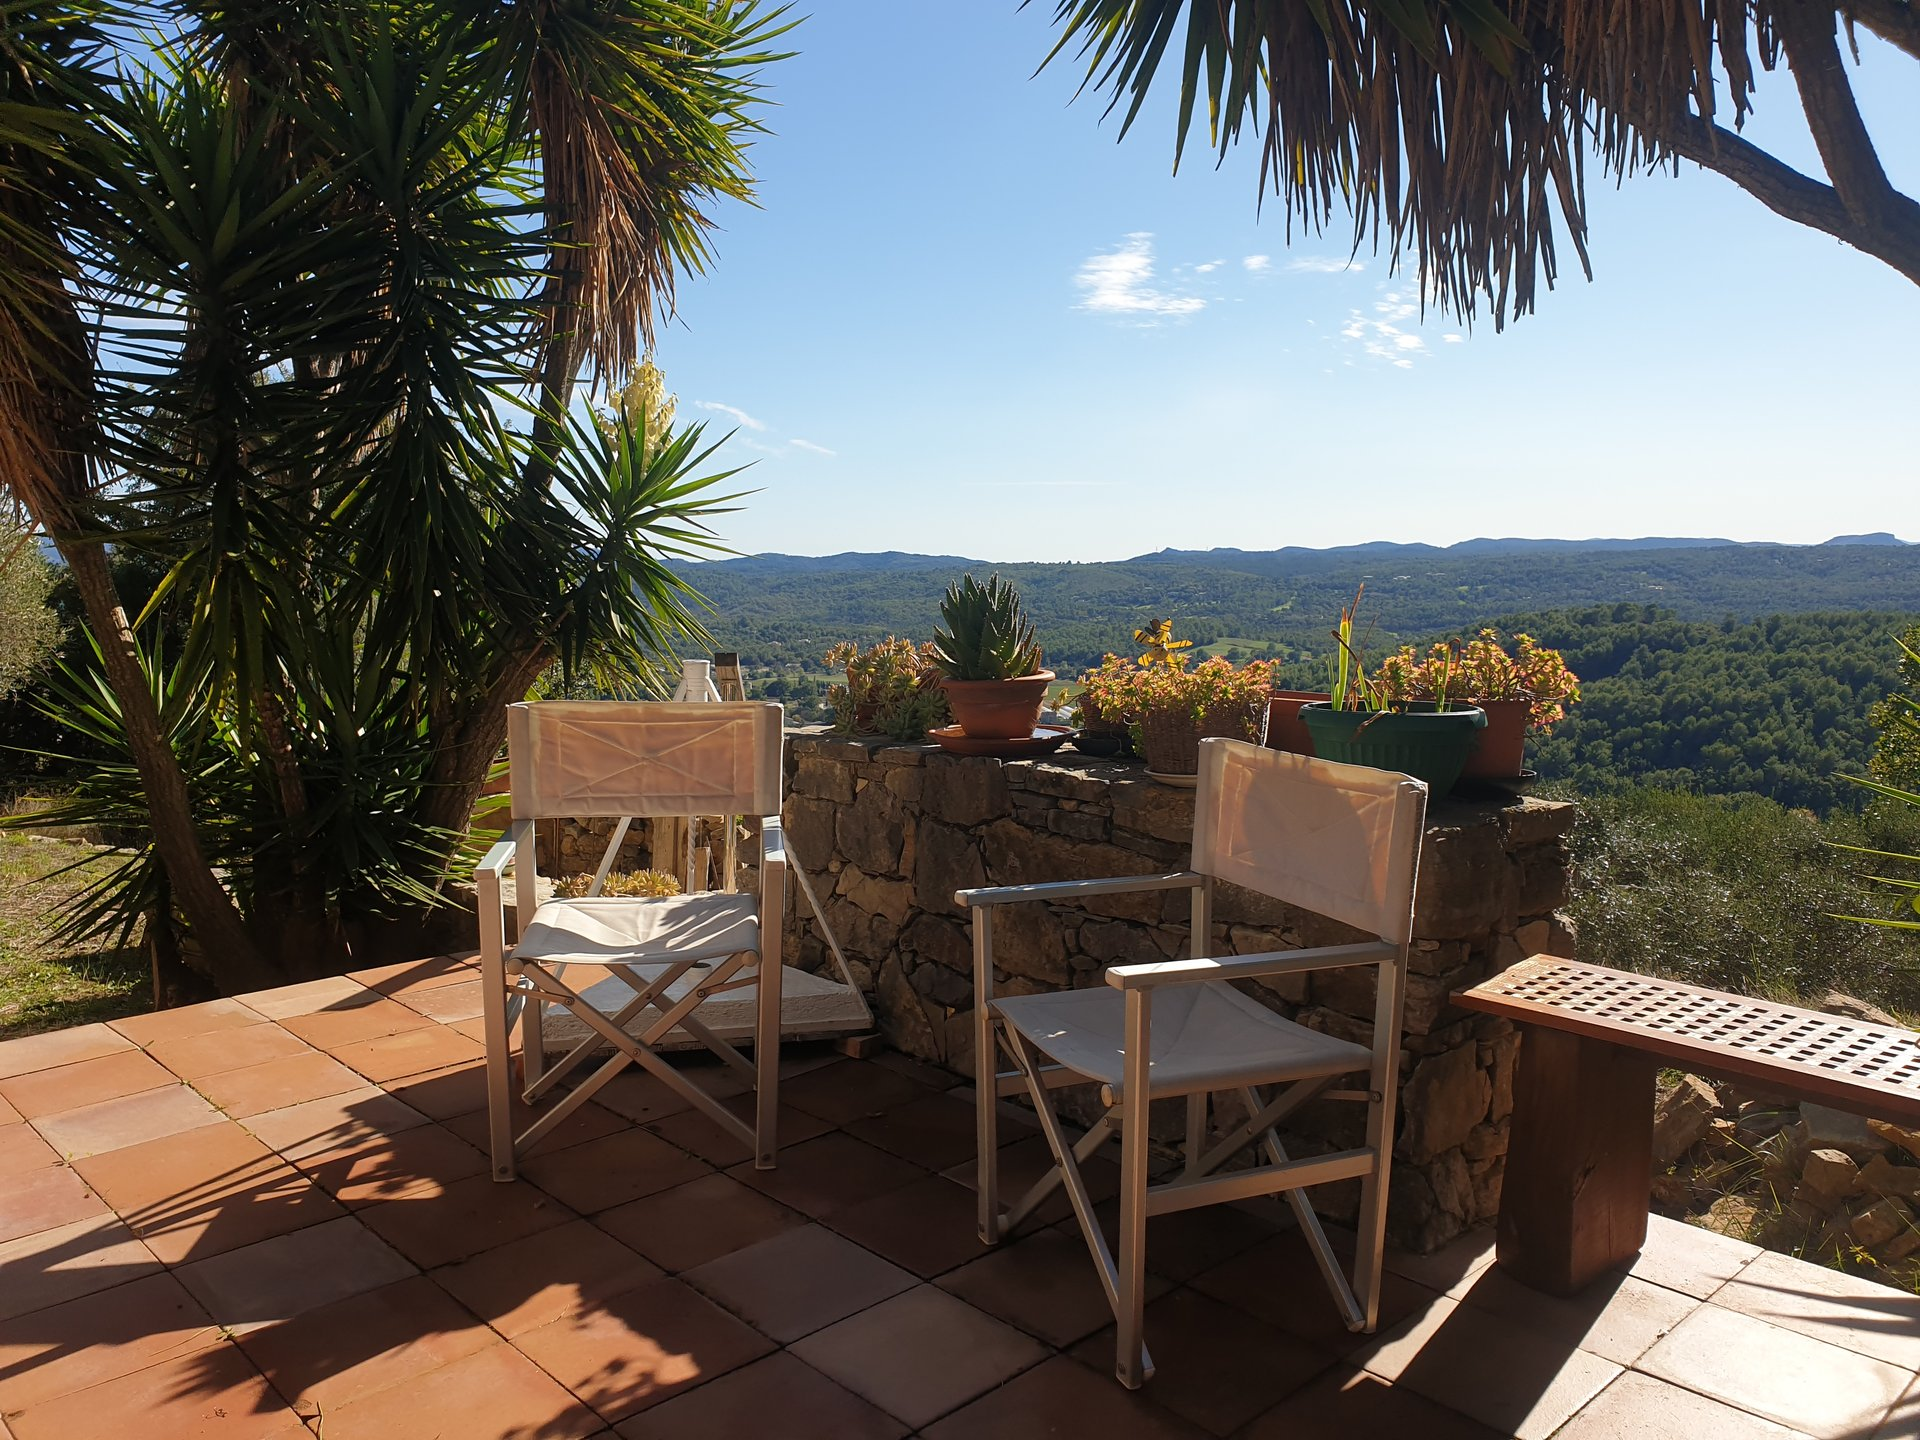 Provençal villa with stunning views & walking distance to the village of Callian